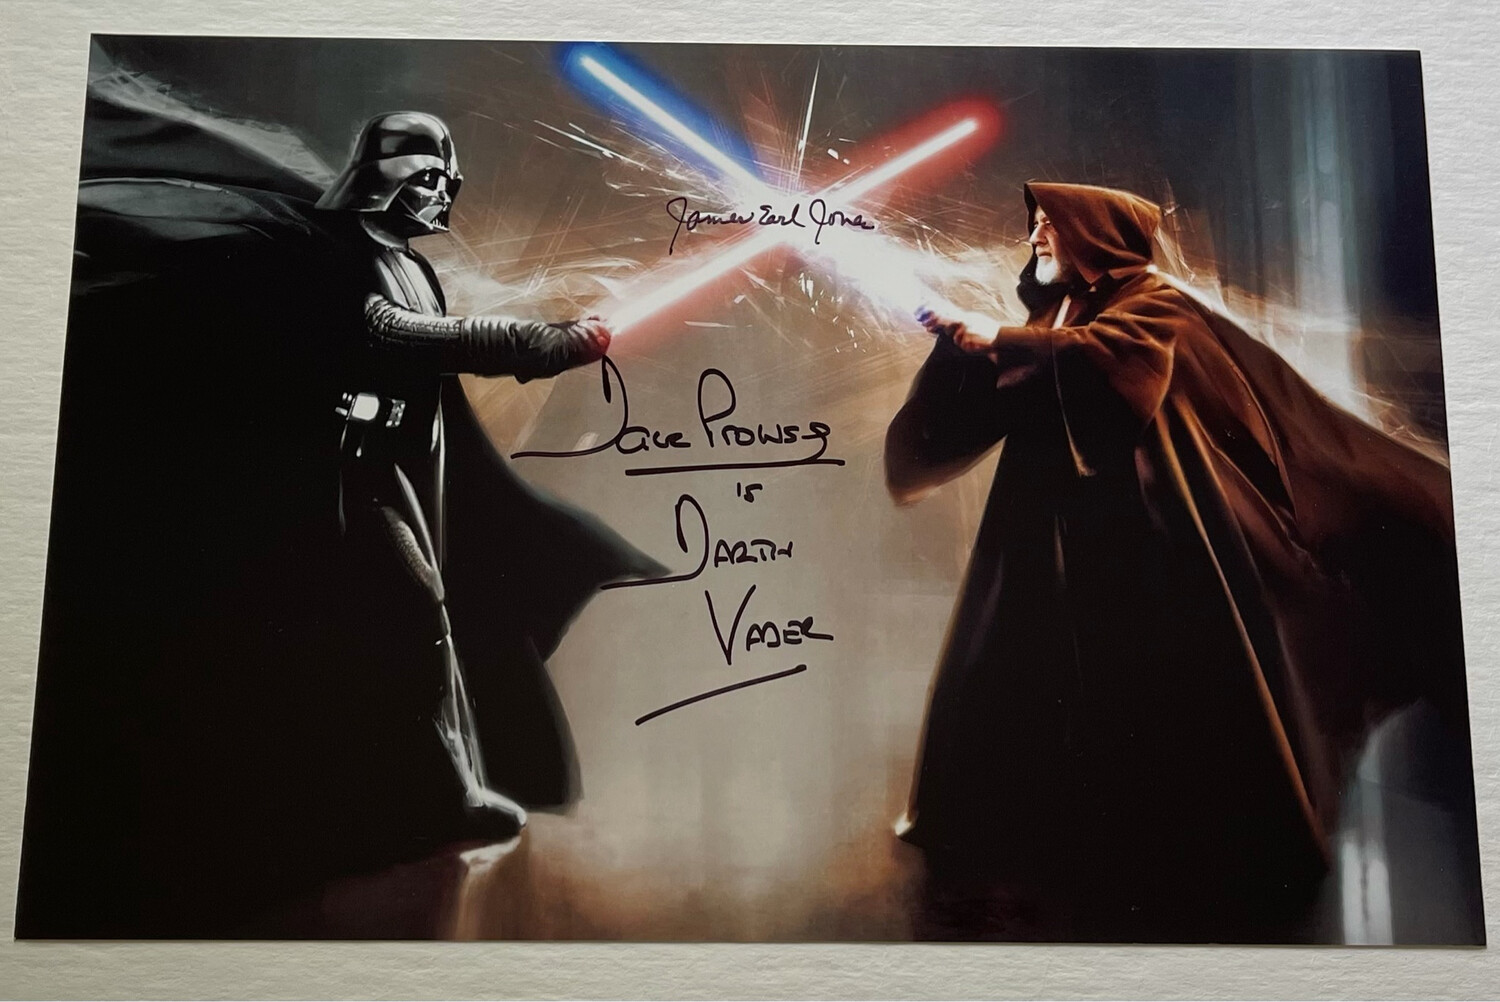 8X12 PHOTO SIGNED BY DAVE PROWSE AND JAMES EARL JONES